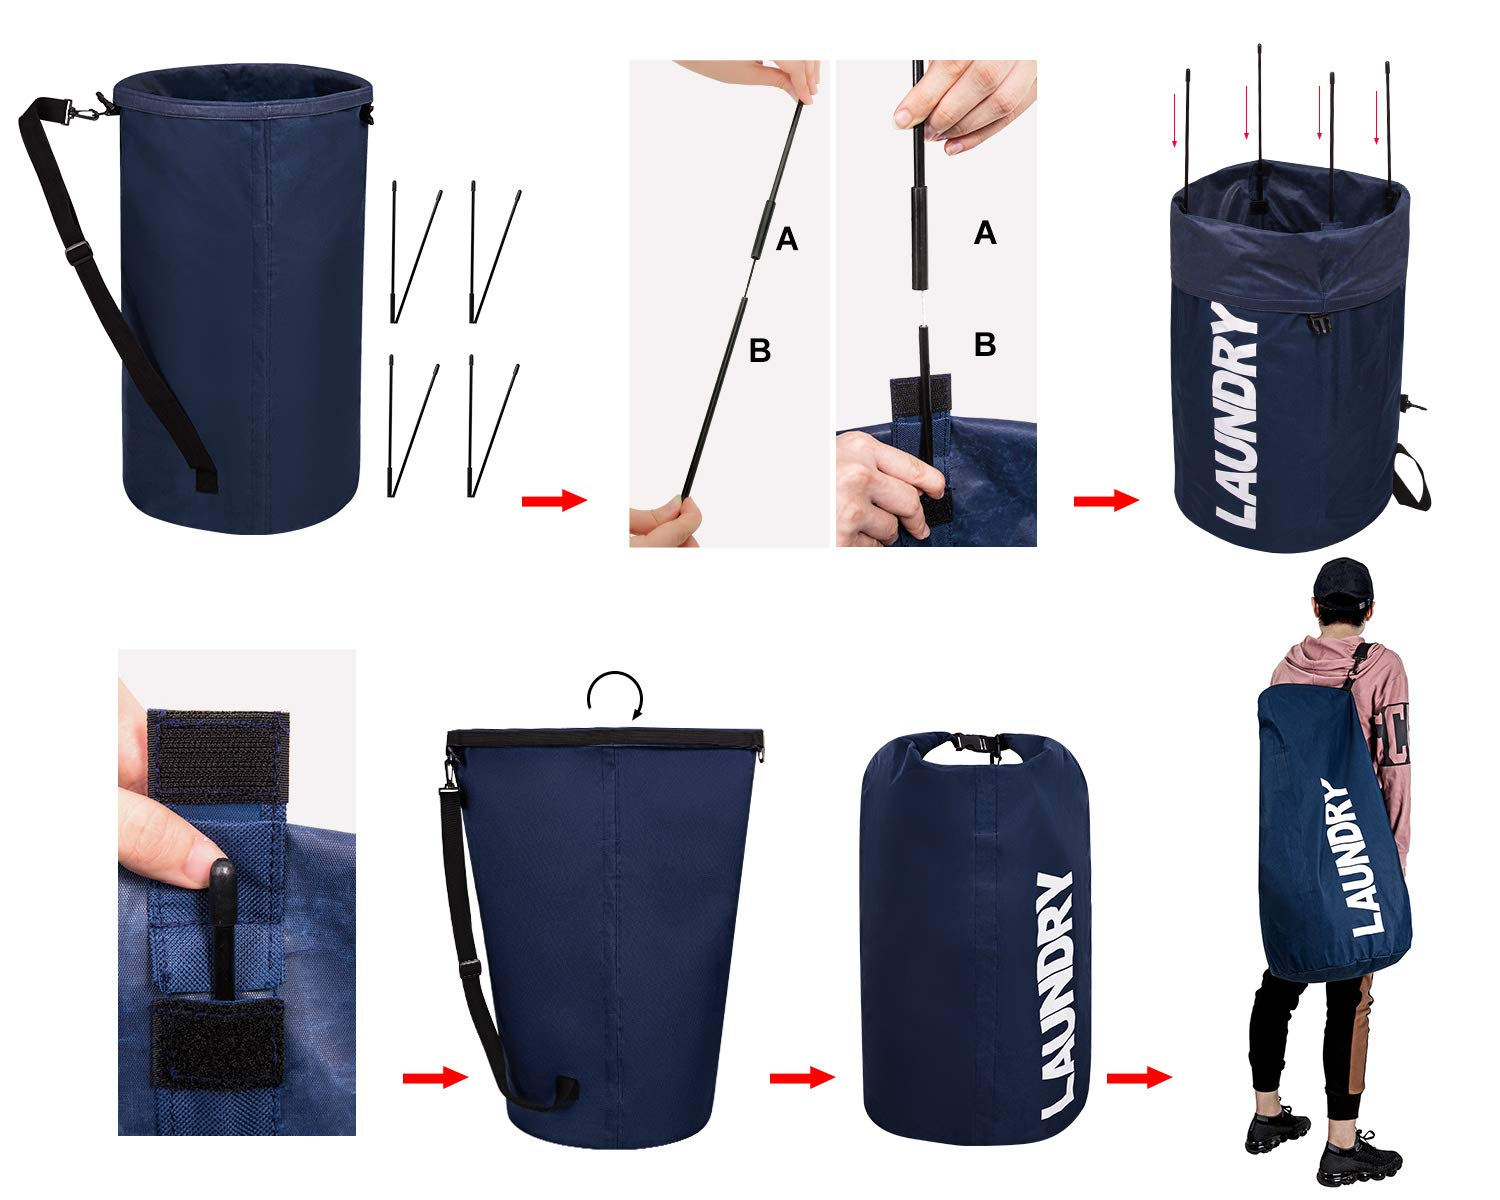 WOWLIVE Extra Large Foldable Laundry Hamper Durable Laundry Basket Collapsible Laundry Bag Backpack Laundry LinerDirty Clothes Hamper Standing Waterproof Hamper for Laundry (Dark Blue)